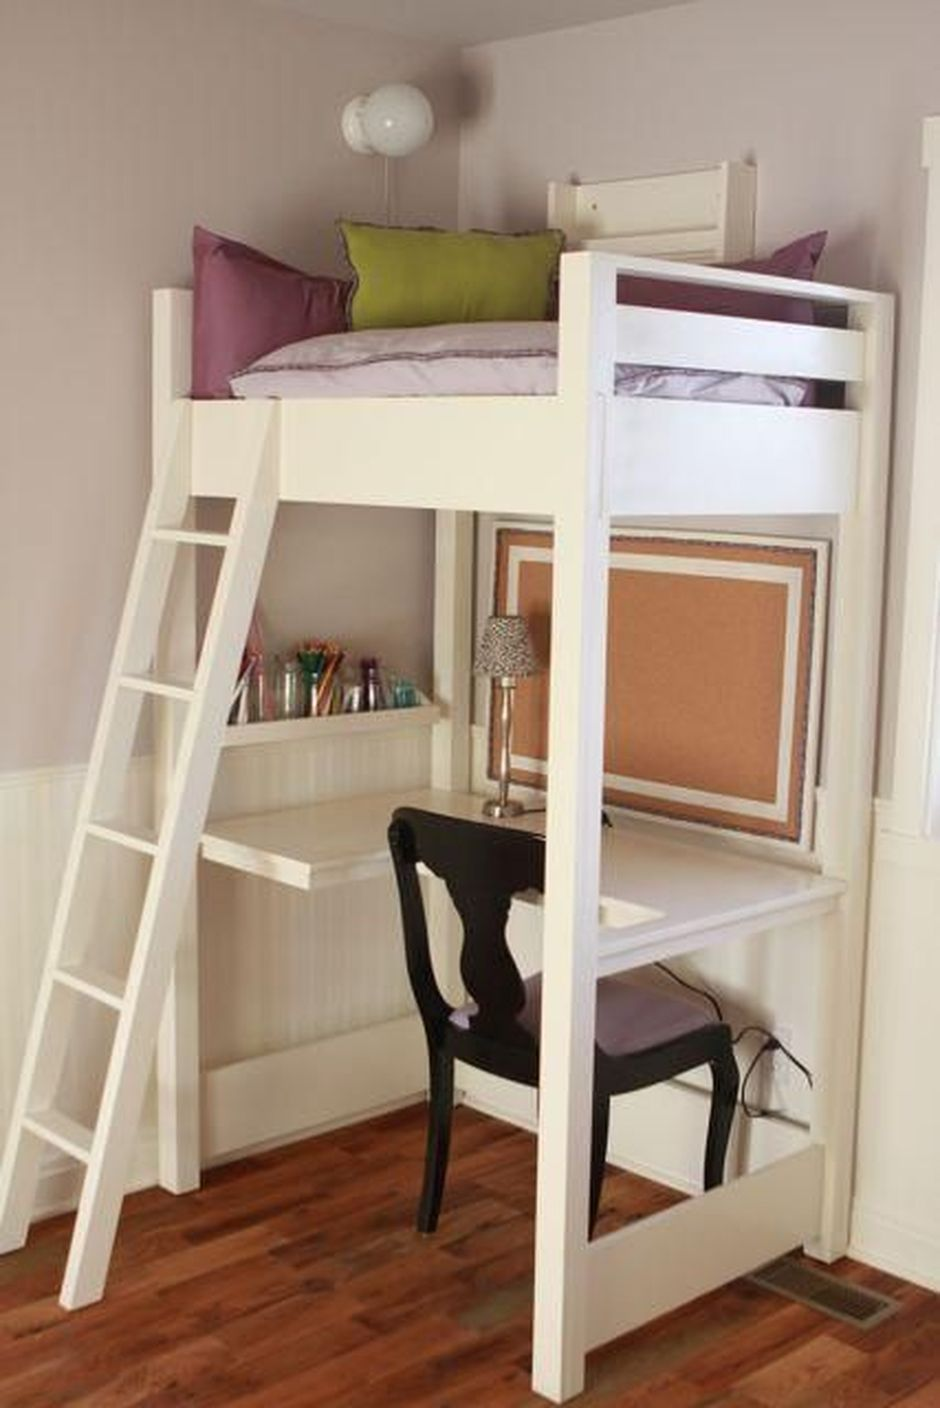 Cool Loft Bed Design Ideas for Small Room 23 - Rockindeco